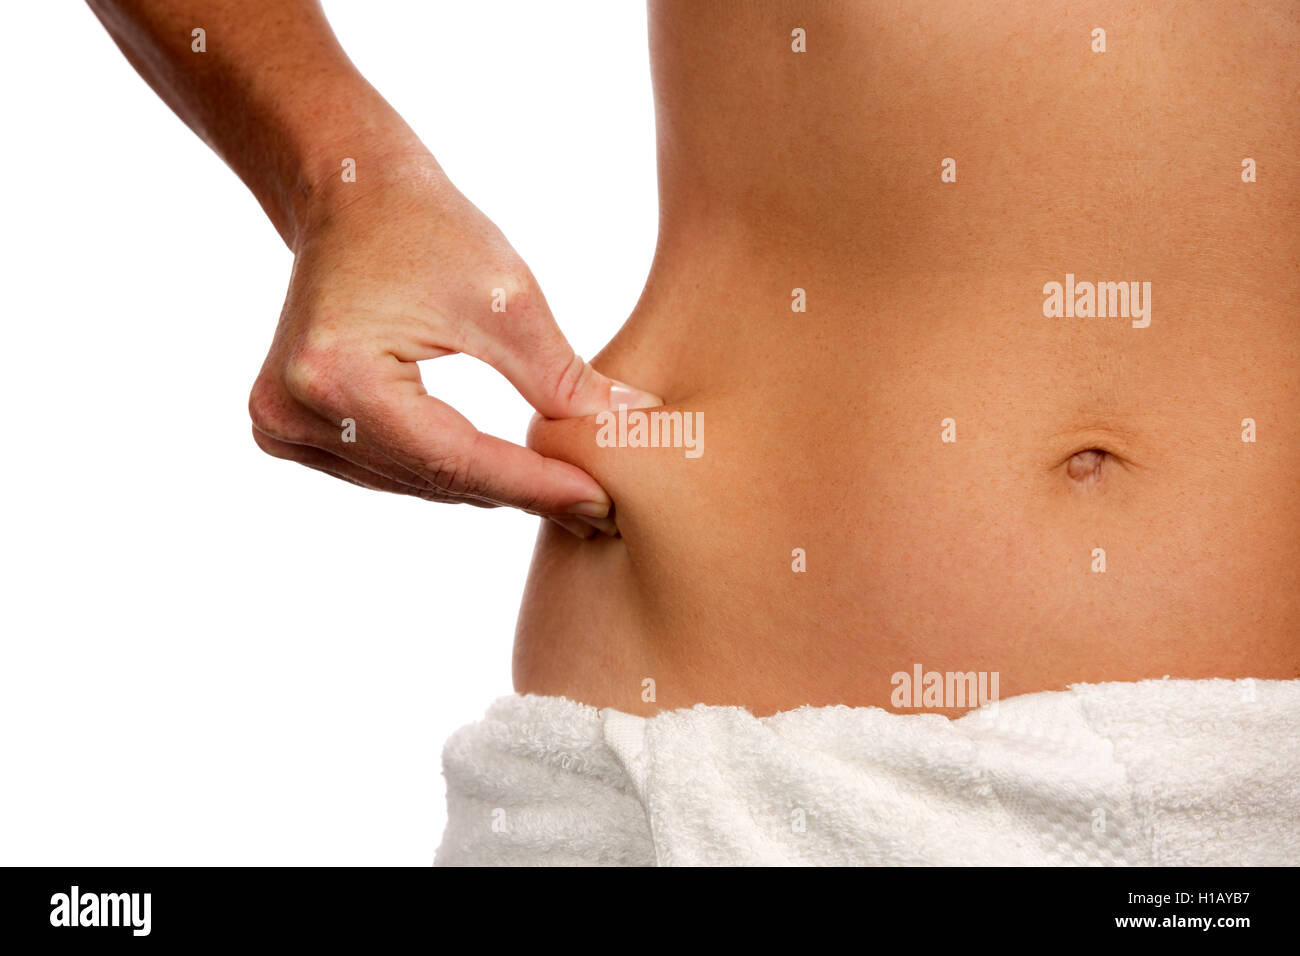 Thin woman pinches some excess flesh of her stomach at her waistline as a dieting and health concept. - Stock Image